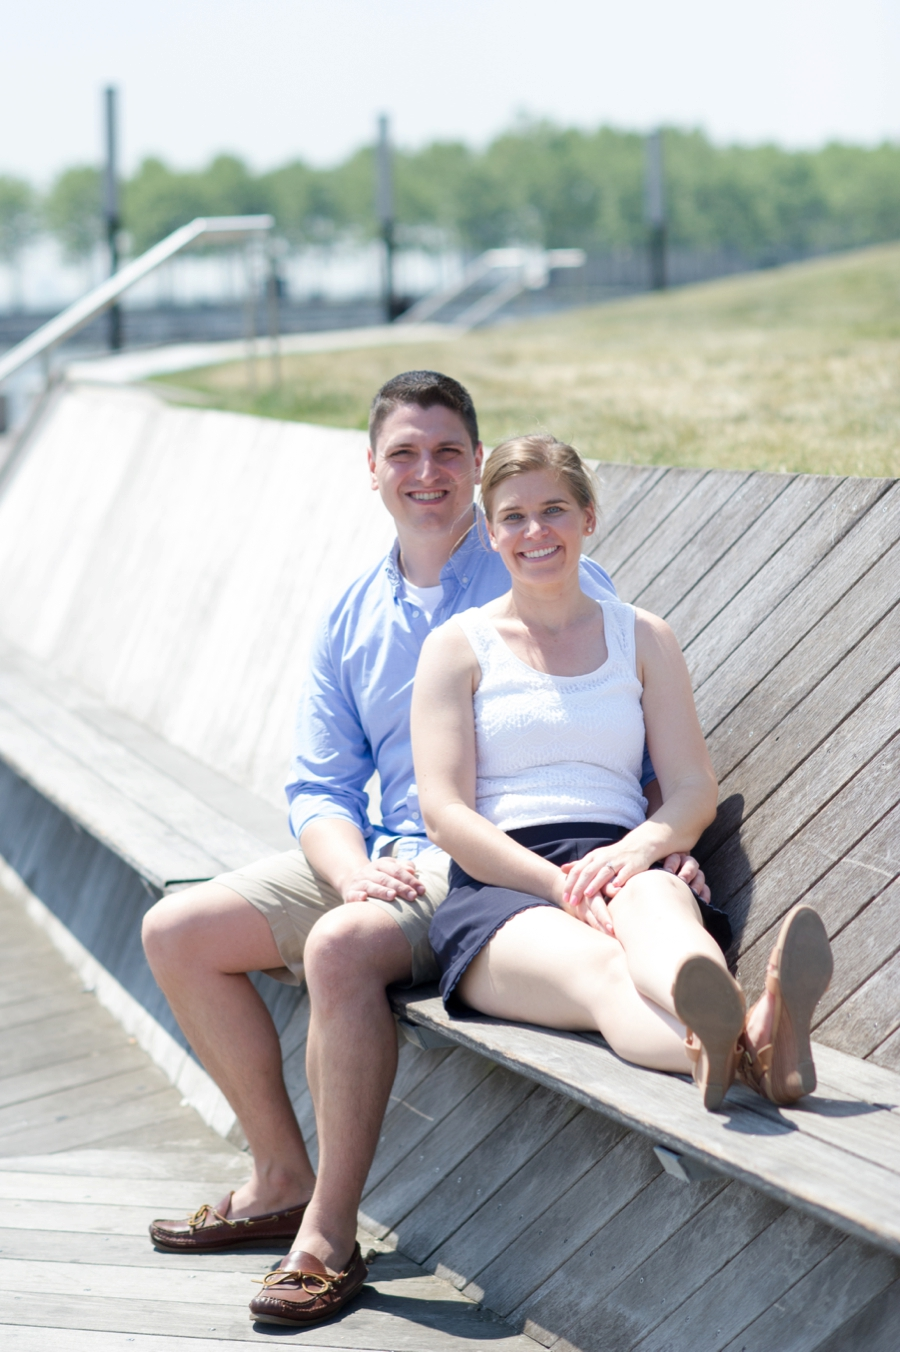 RKP_KIM_HOBOKEN_ENGAGEMENT_SESSION_0012.jpg